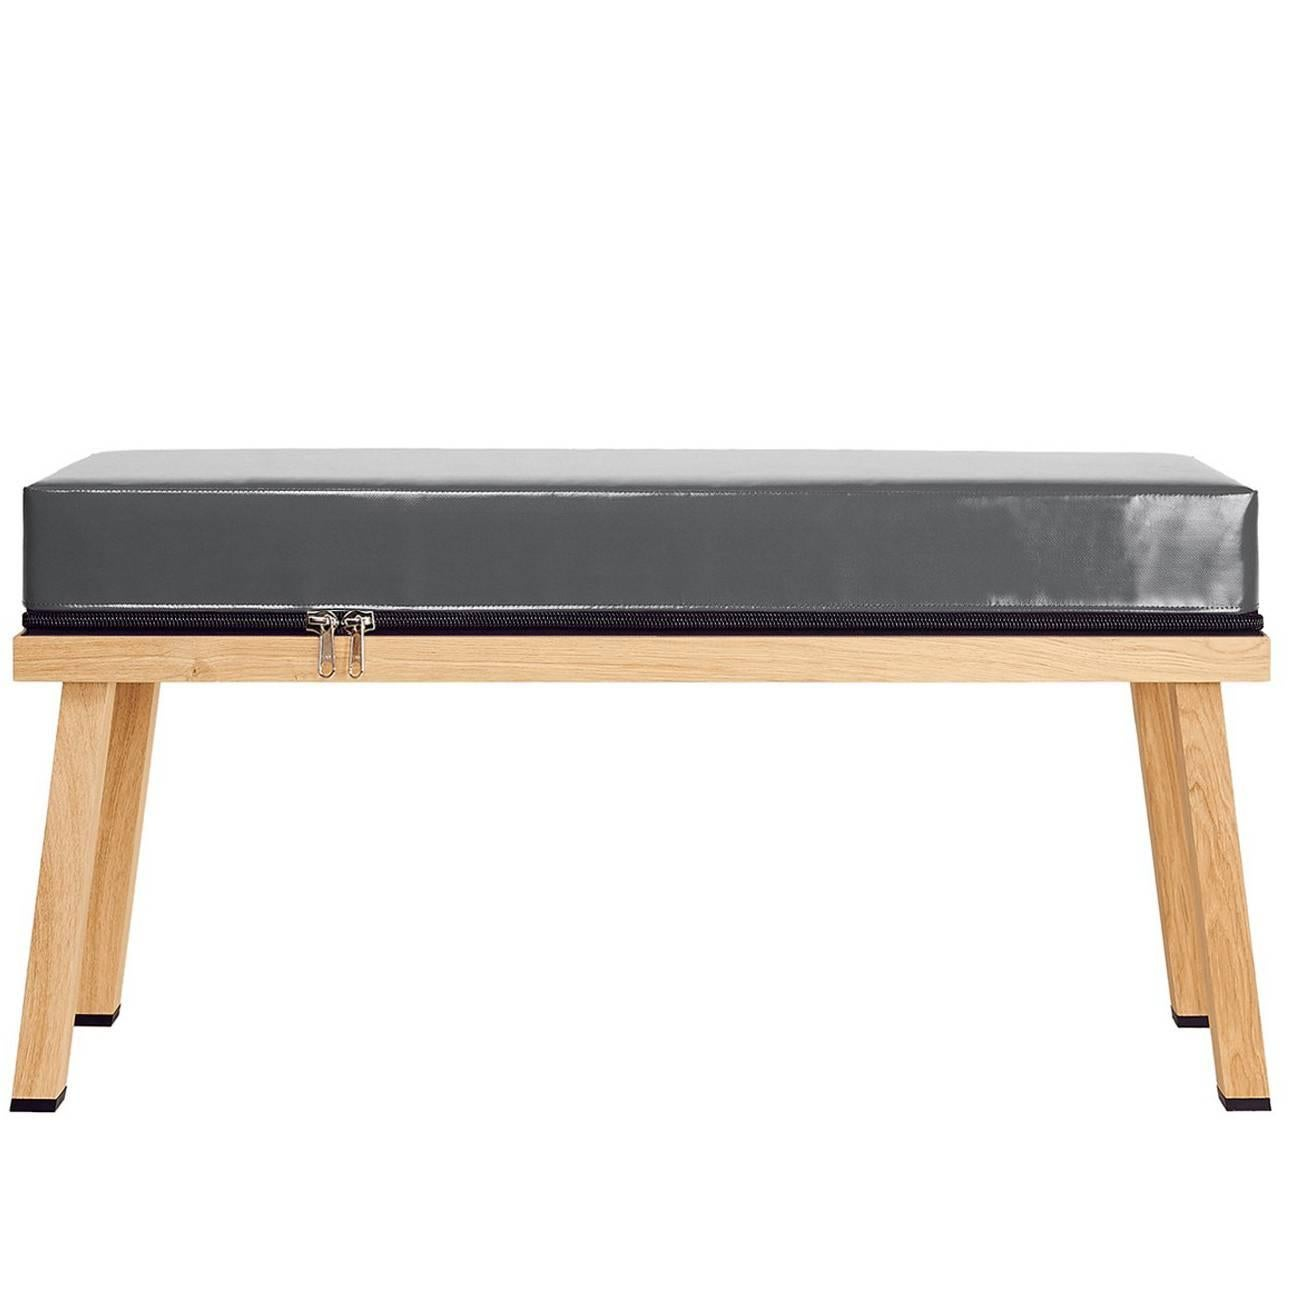 Merveilleux Visser And Meijwaard Truecolors Bench In Dark Grey PVC Cloth With Zipper  For Sale